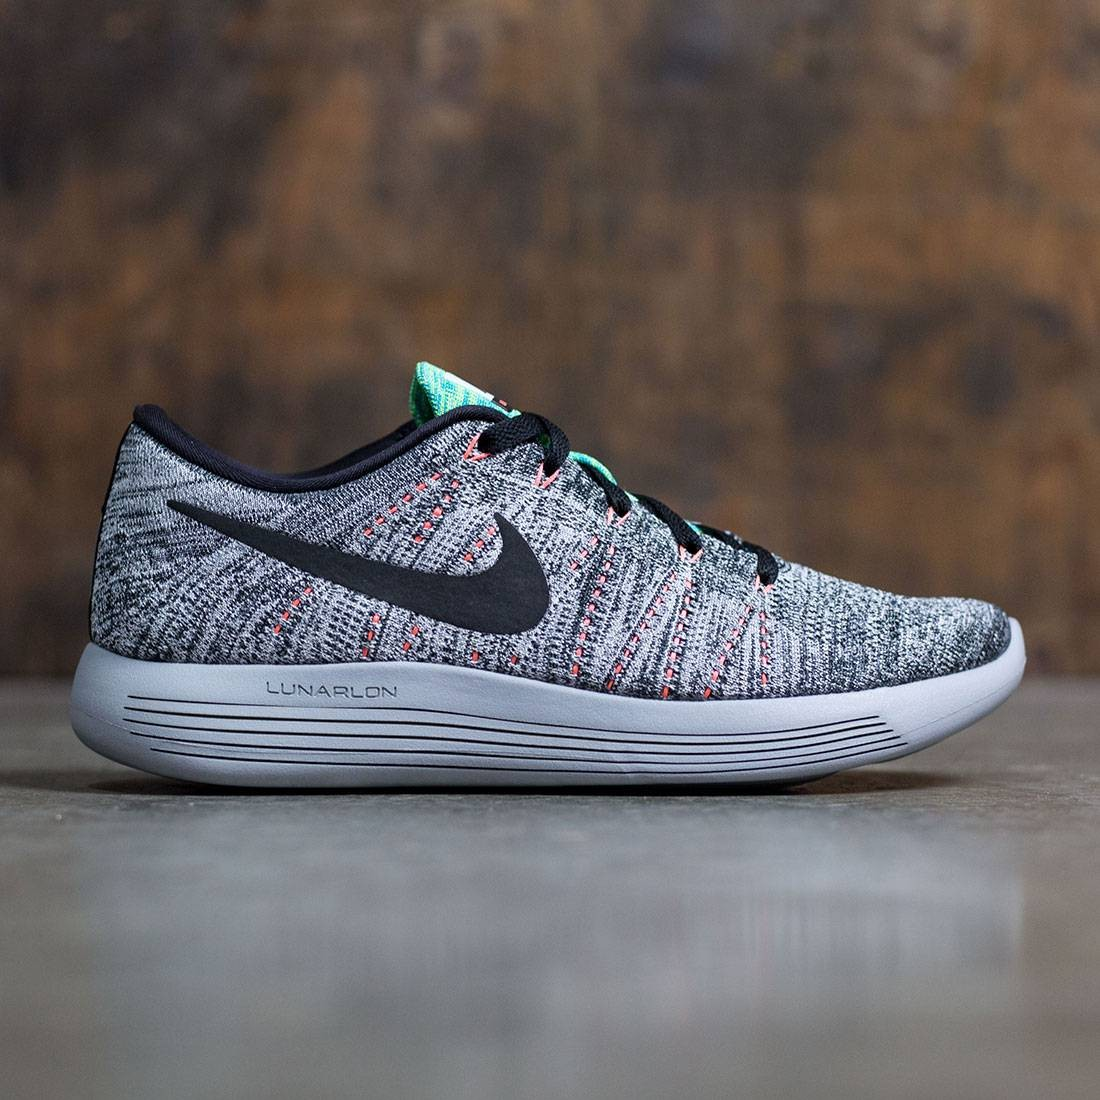 5f73d774dc877 ... buy nike men lunarepic low flyknit running white black bright mango  gamma blue 85920 f4321